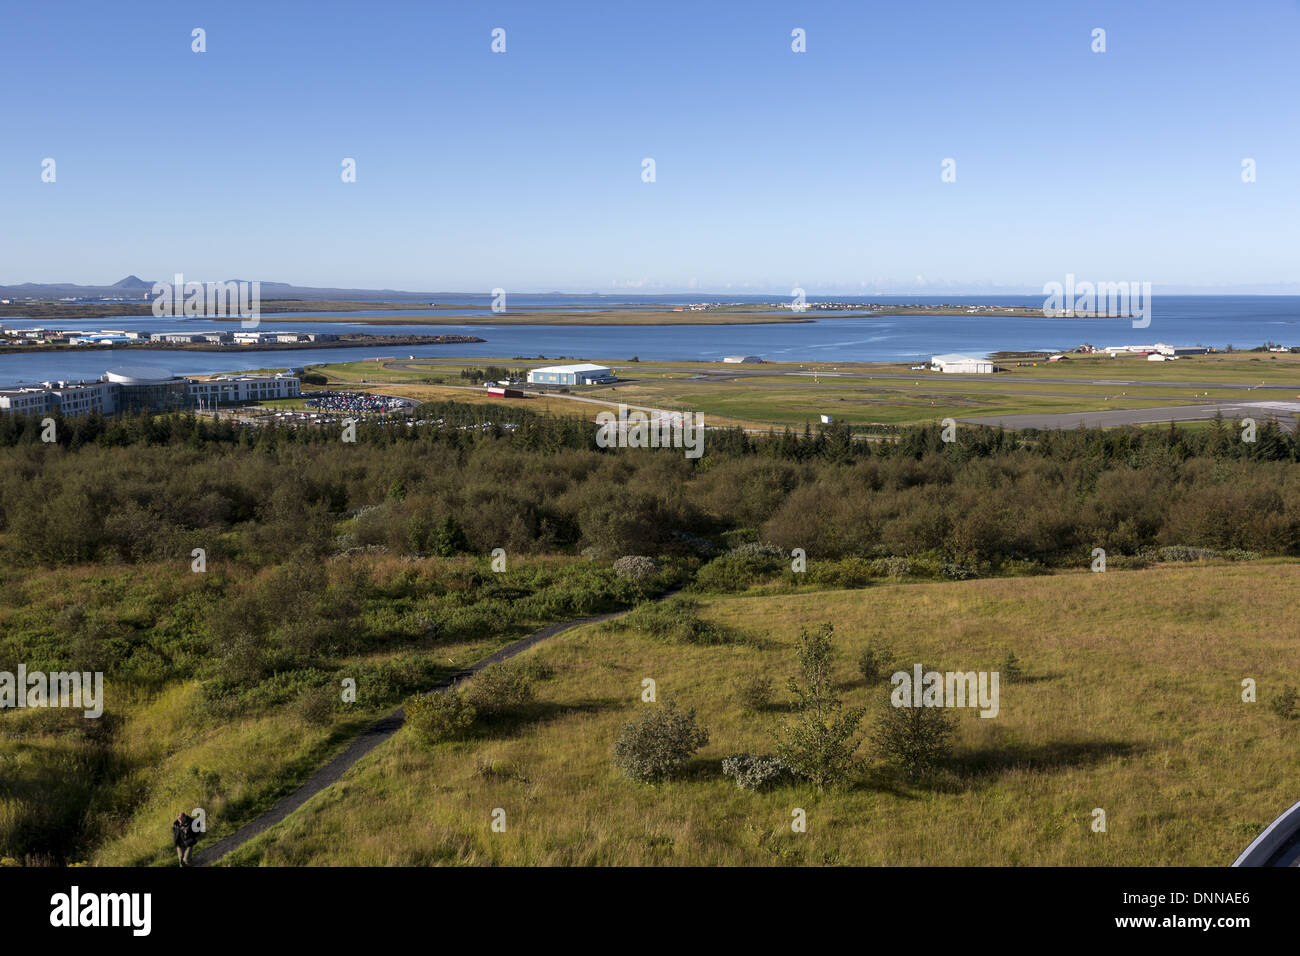 View of old airport area of Reykjavik Iceland - Stock Image